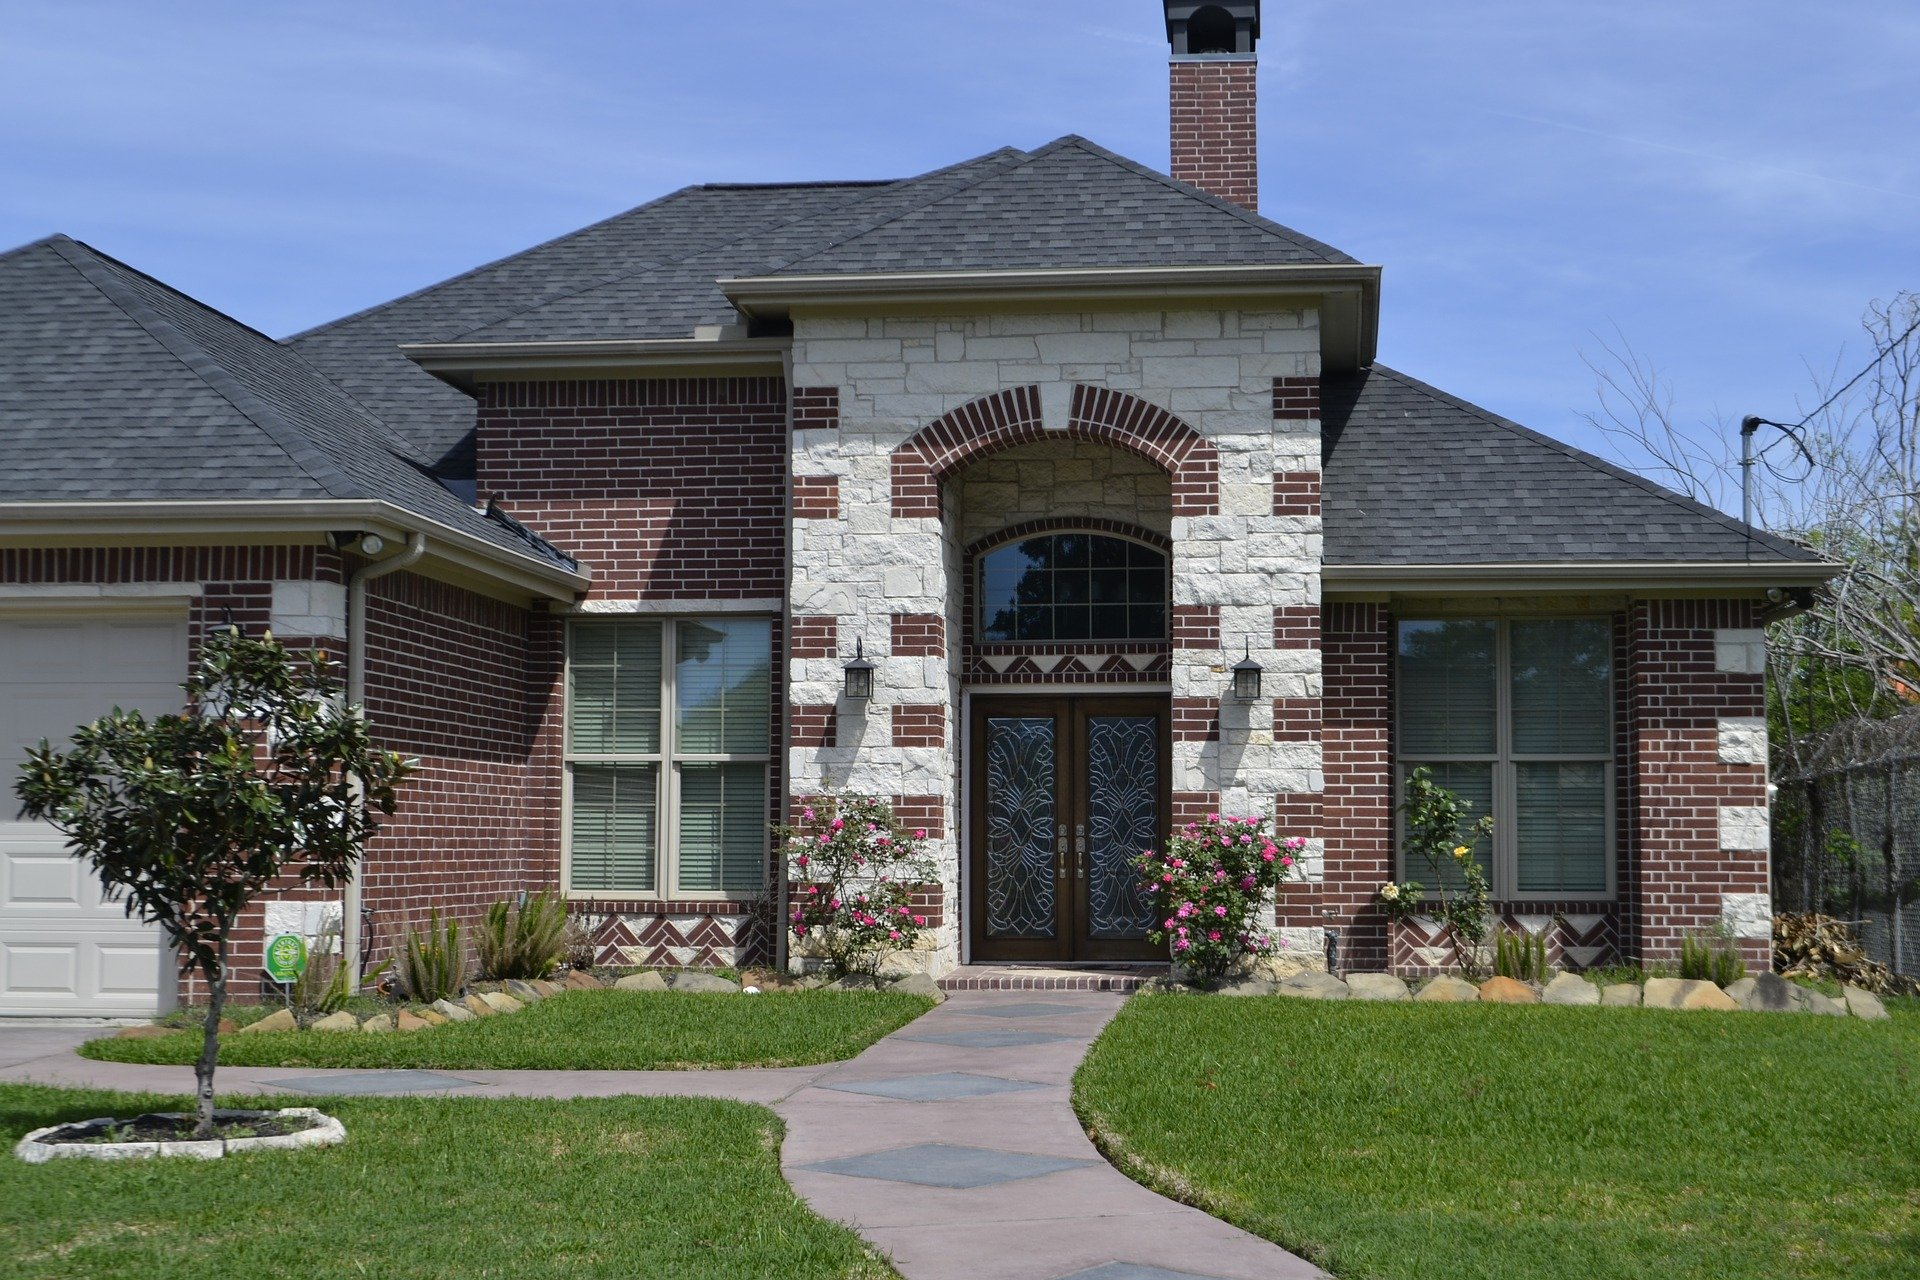 beautiful professional roofing little rock arkansas local roof builder roof installation shingles